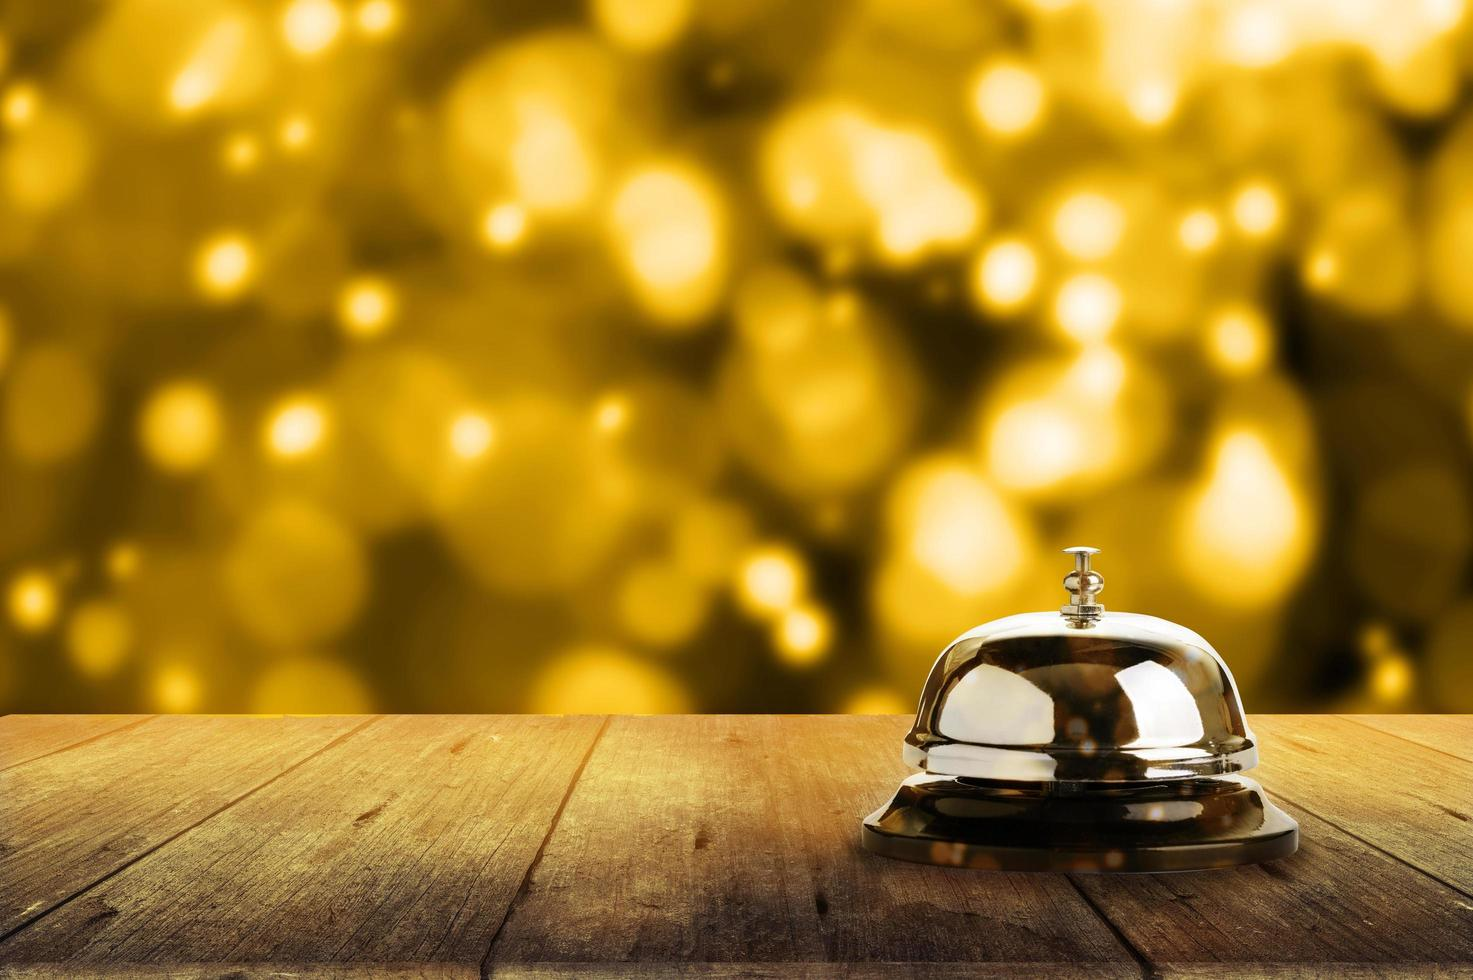 Service bell and gold bokeh photo